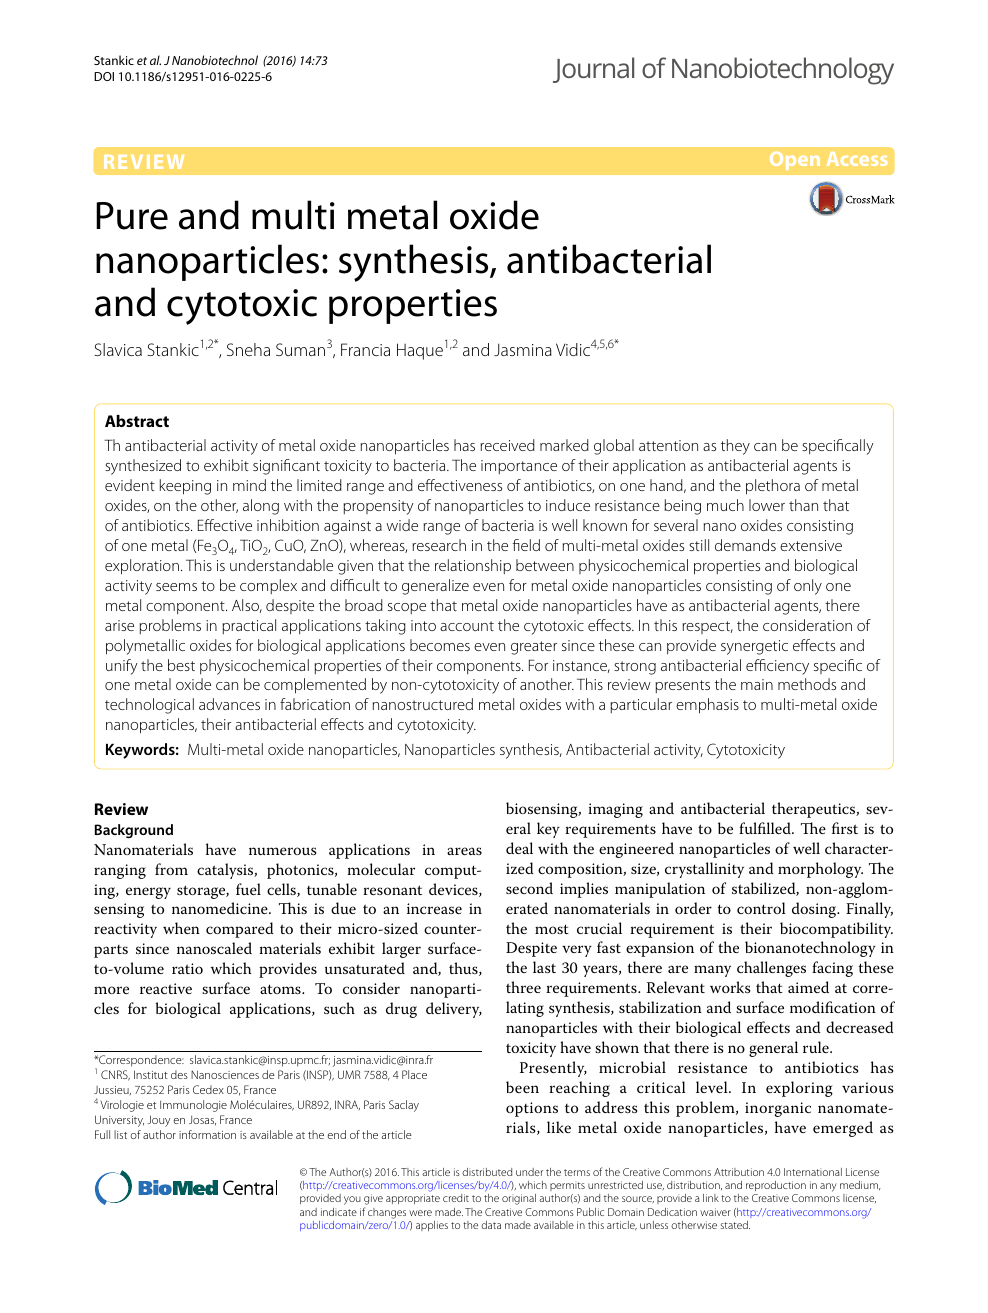 Pure and multi metal oxide nanoparticles: synthesis